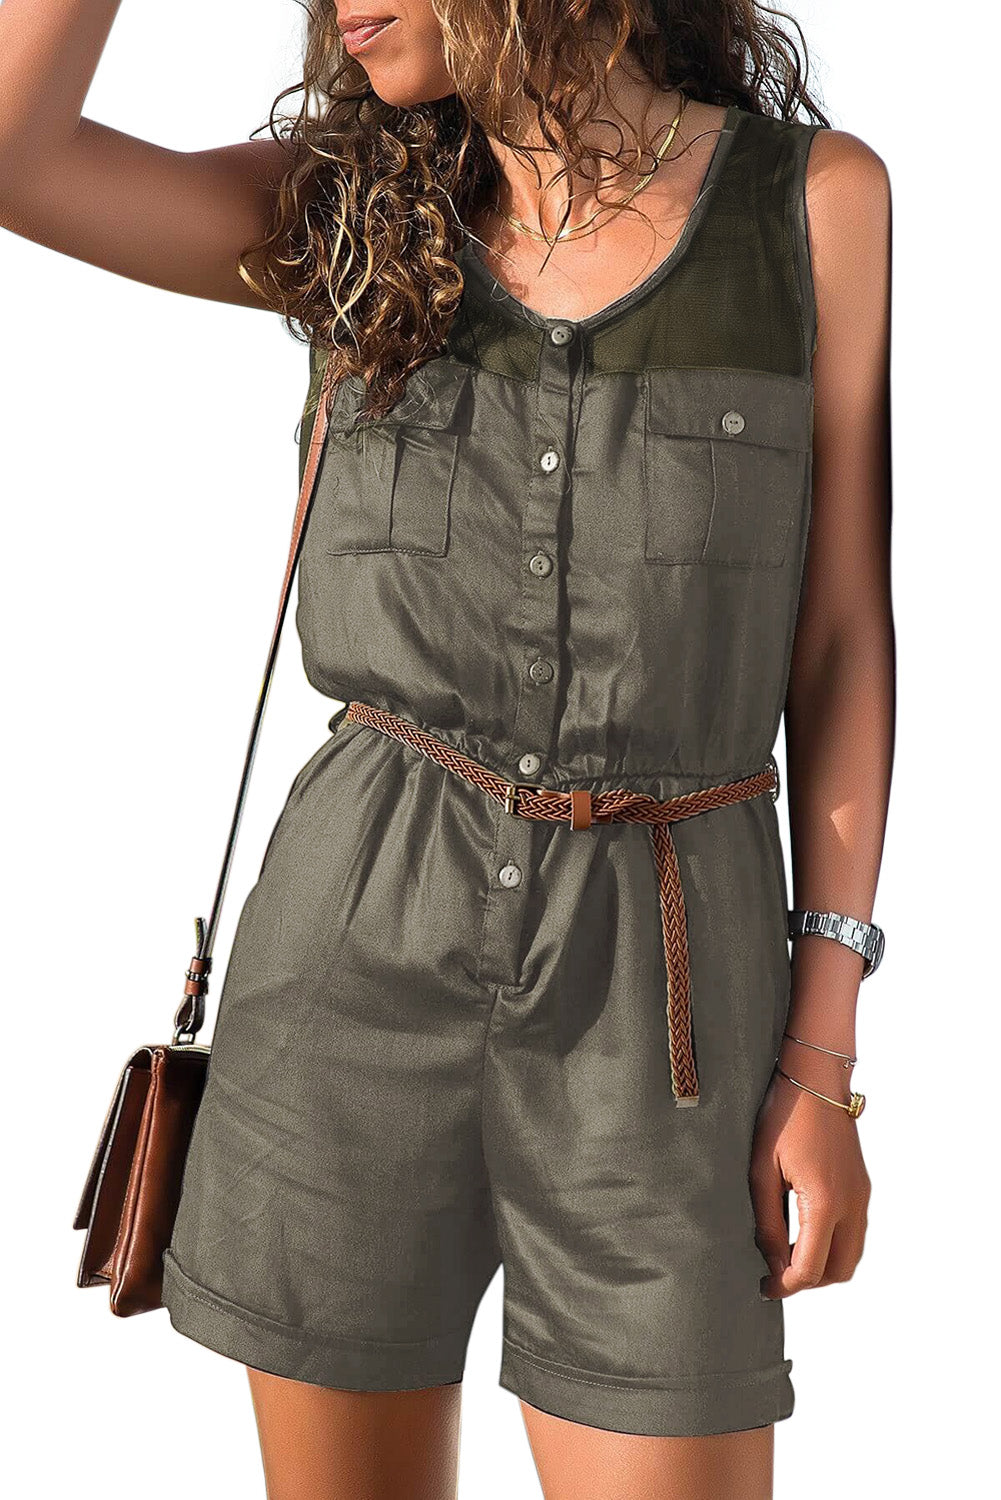 Green Yoke Buttoned Playsuit with Pockets